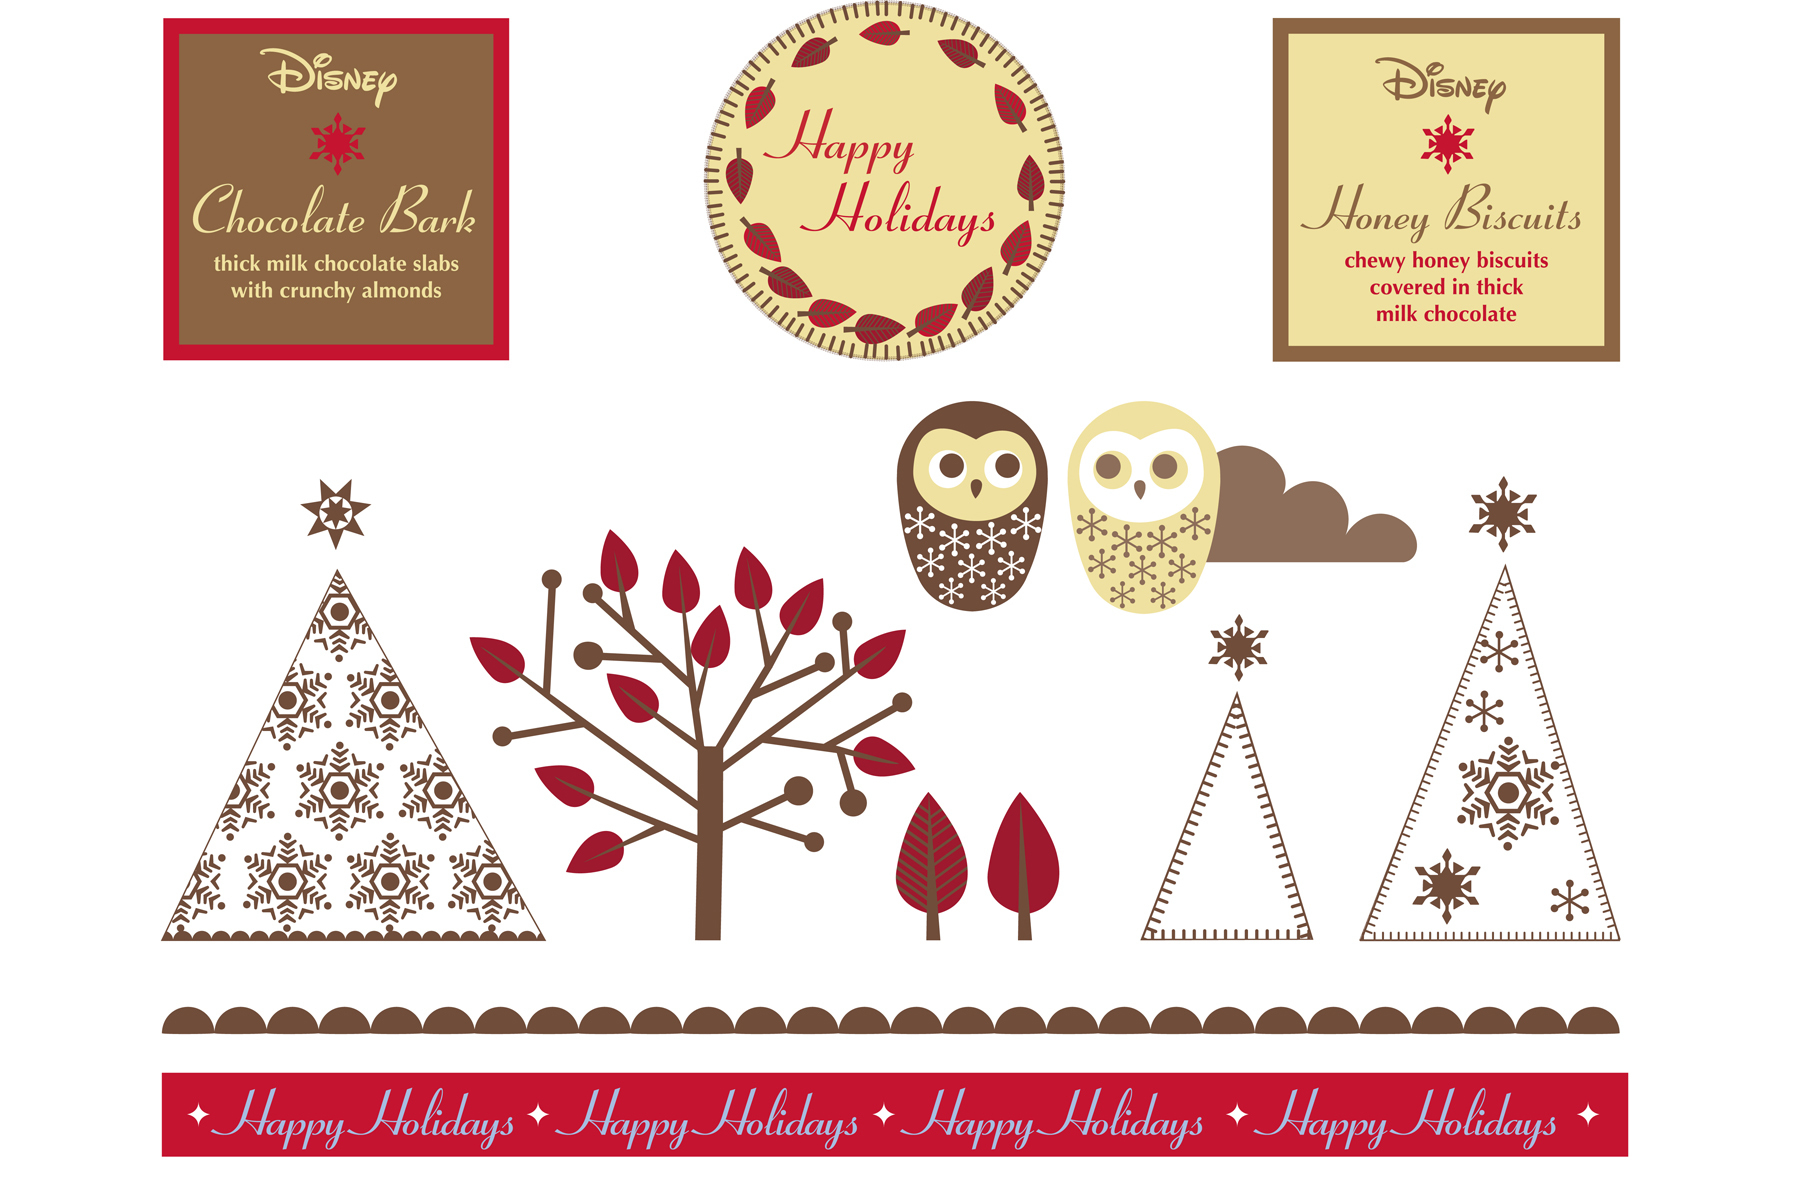 A Christmas identity for Winnie the Pooh and friends, 